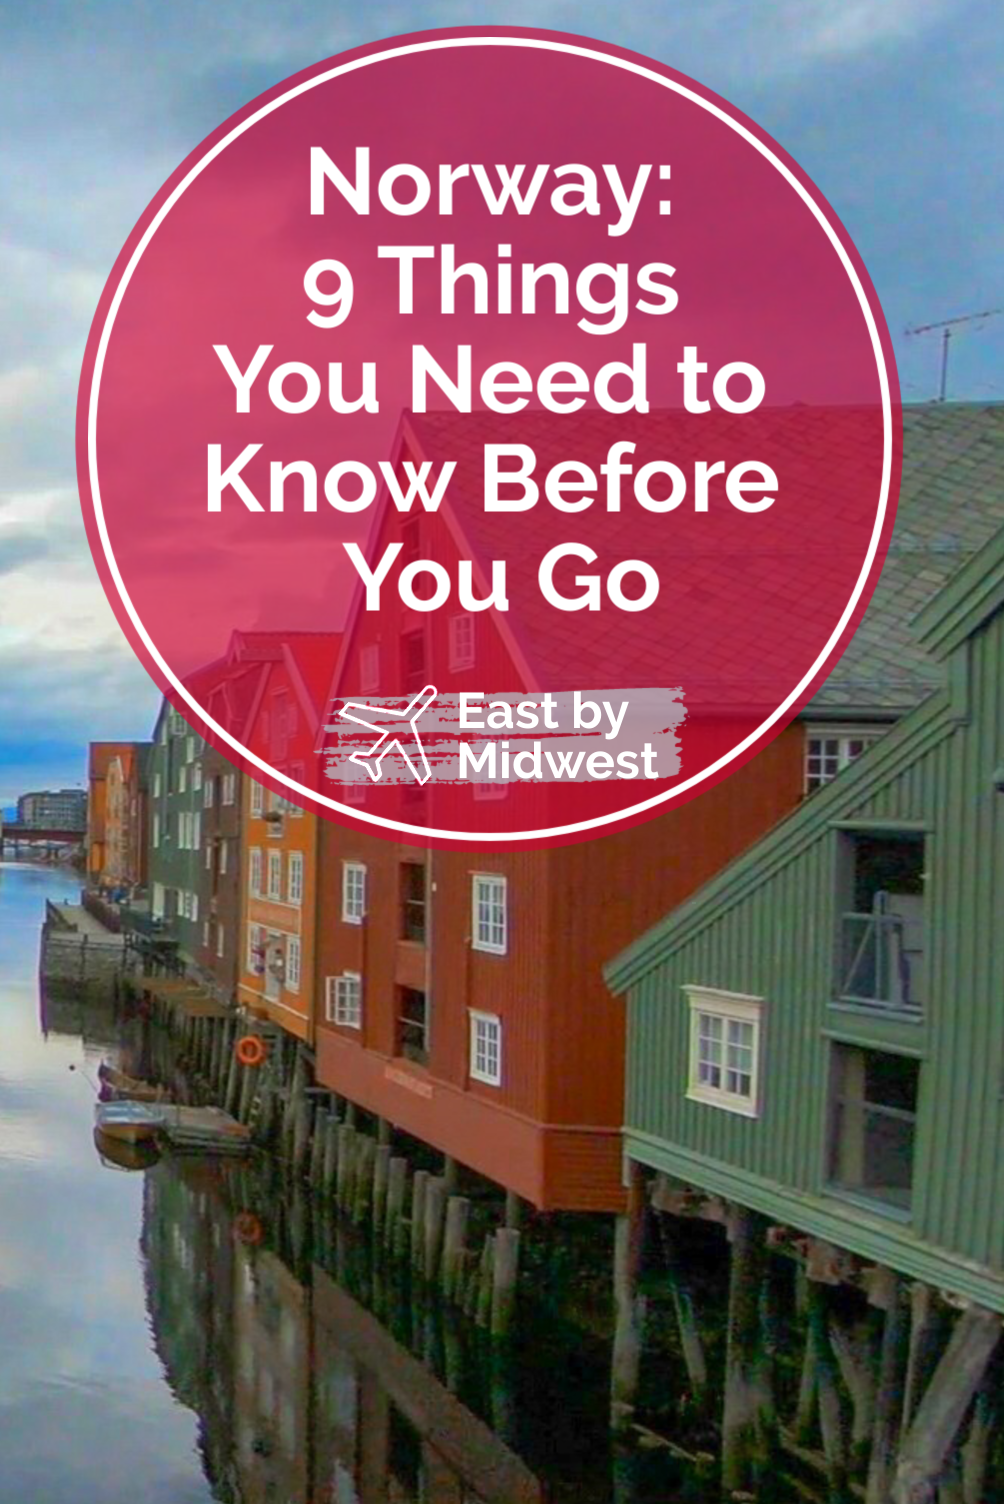 Norway is a stunning country that you need to experience for yourself. These essential tips will help you make the most of your trip to Norway. #norway #visitnorway #bestofnorway #bucketlist #wanderlust #travel #photooftheday